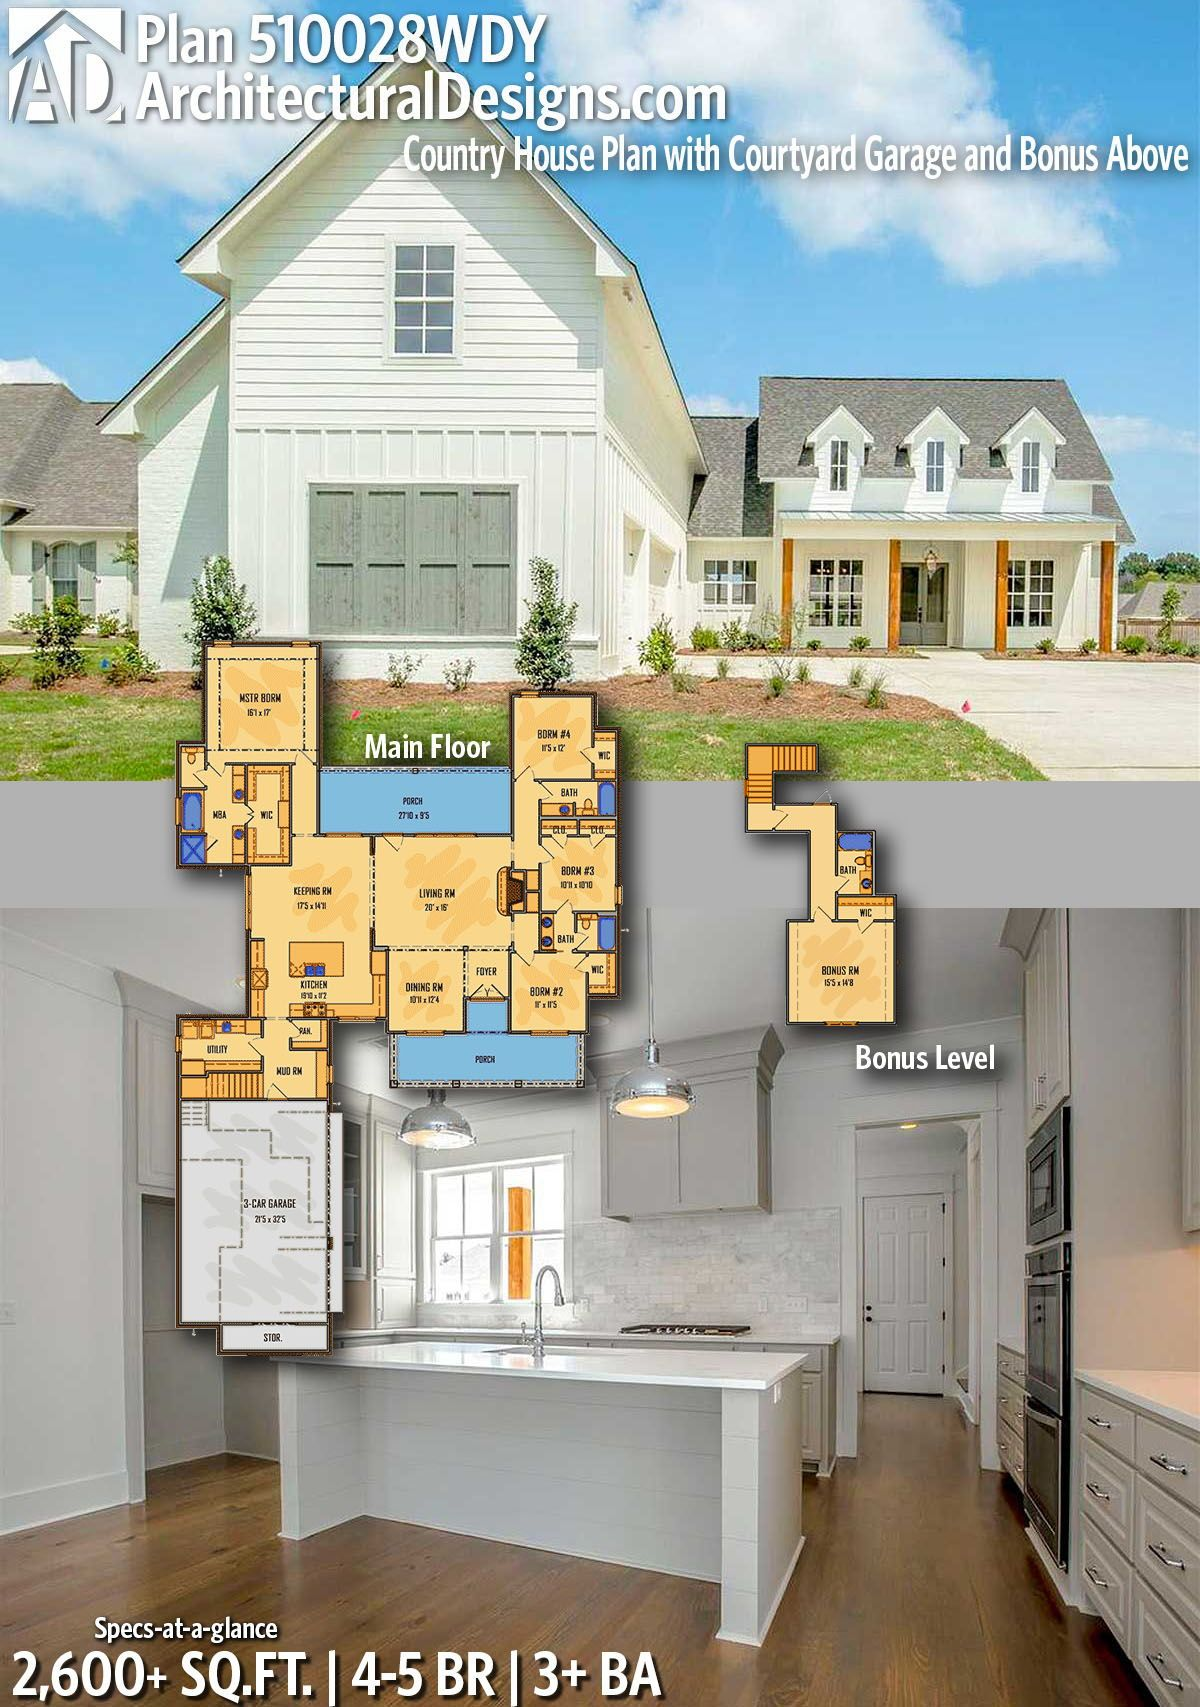 5 bedroom loft floor plans  Plan WDY Country House Plan with Courtyard Garage and Bonus